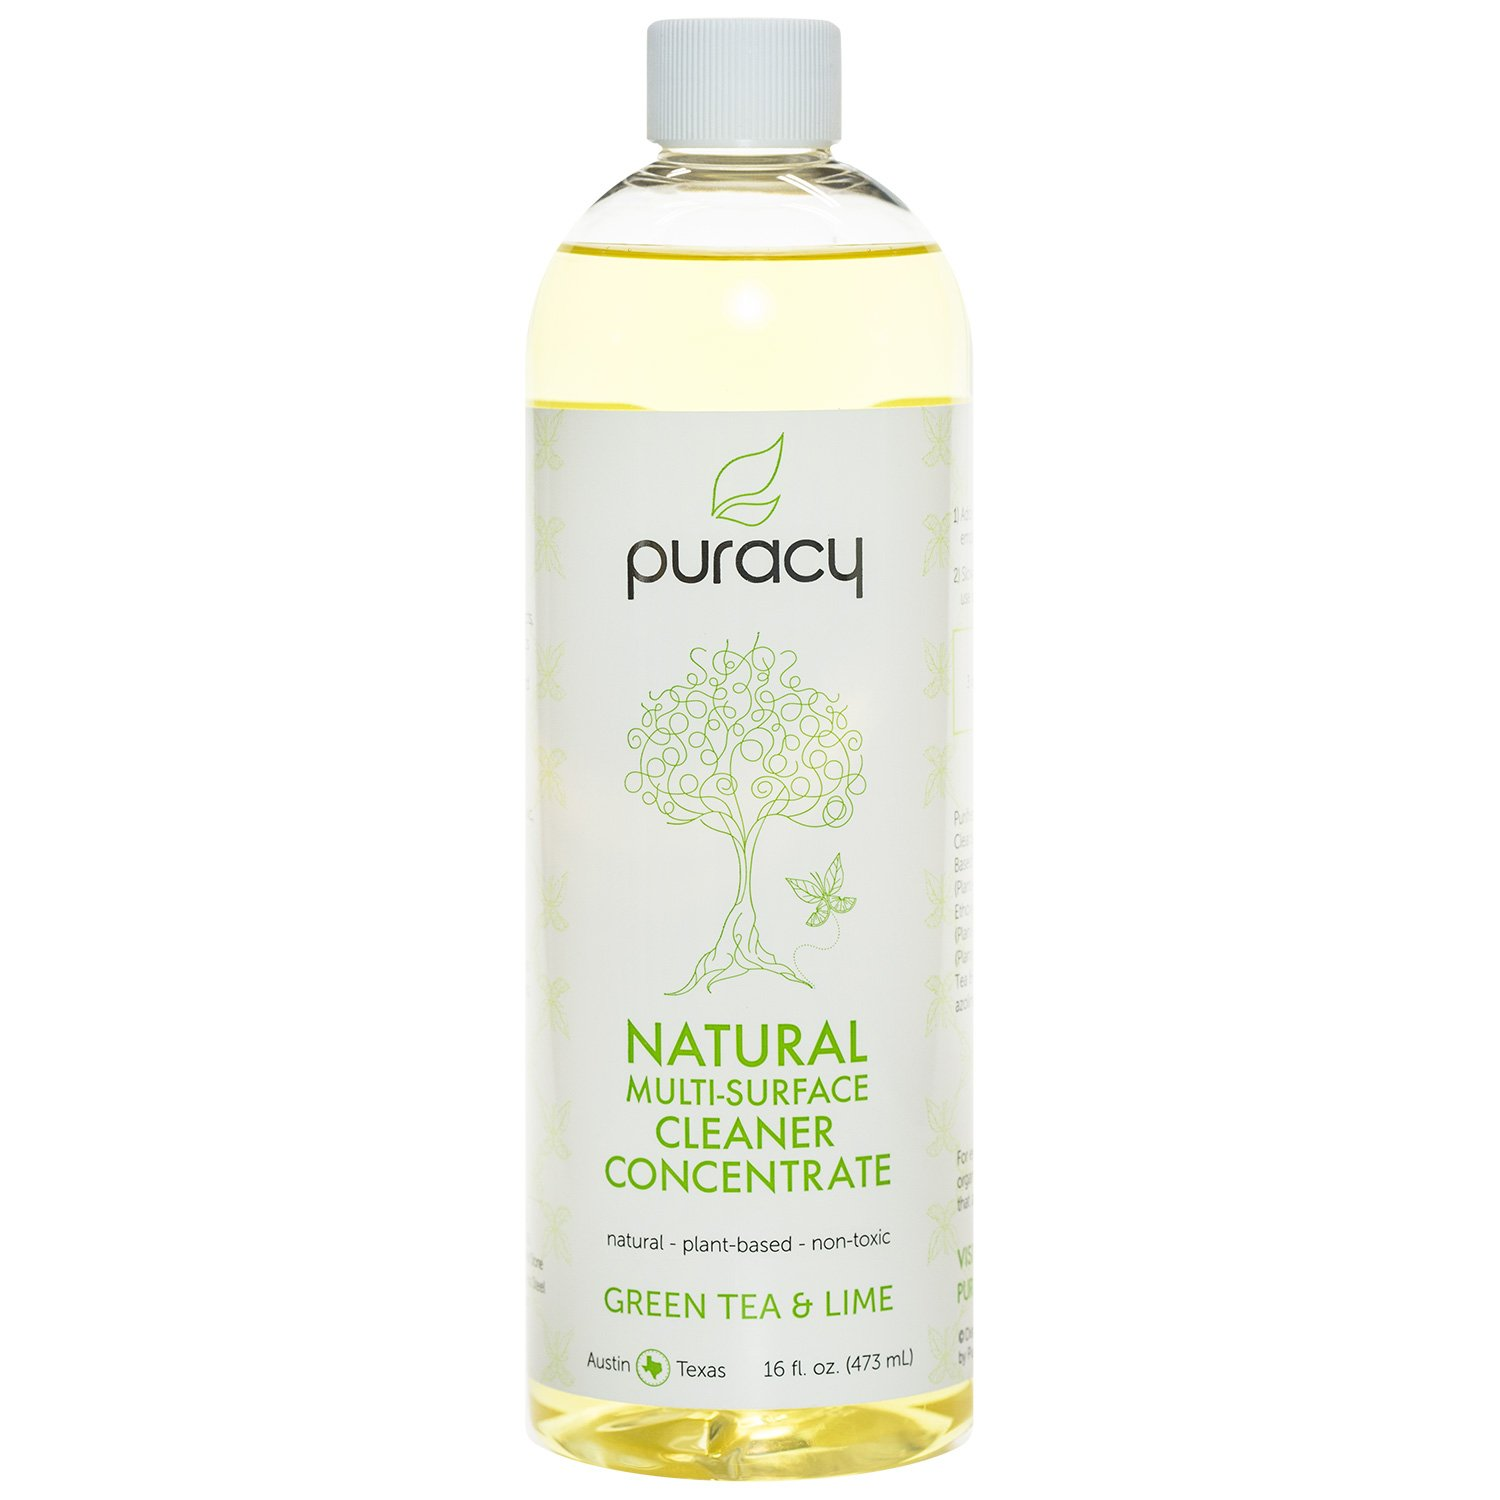 Puracy Natural All Purpose Cleaner Concentrate (Makes 1 Gallon), Streak Free, Professional Results, Safe on All Surfaces, Green Tea and Lime, 16 Fluid Ounce Bottle